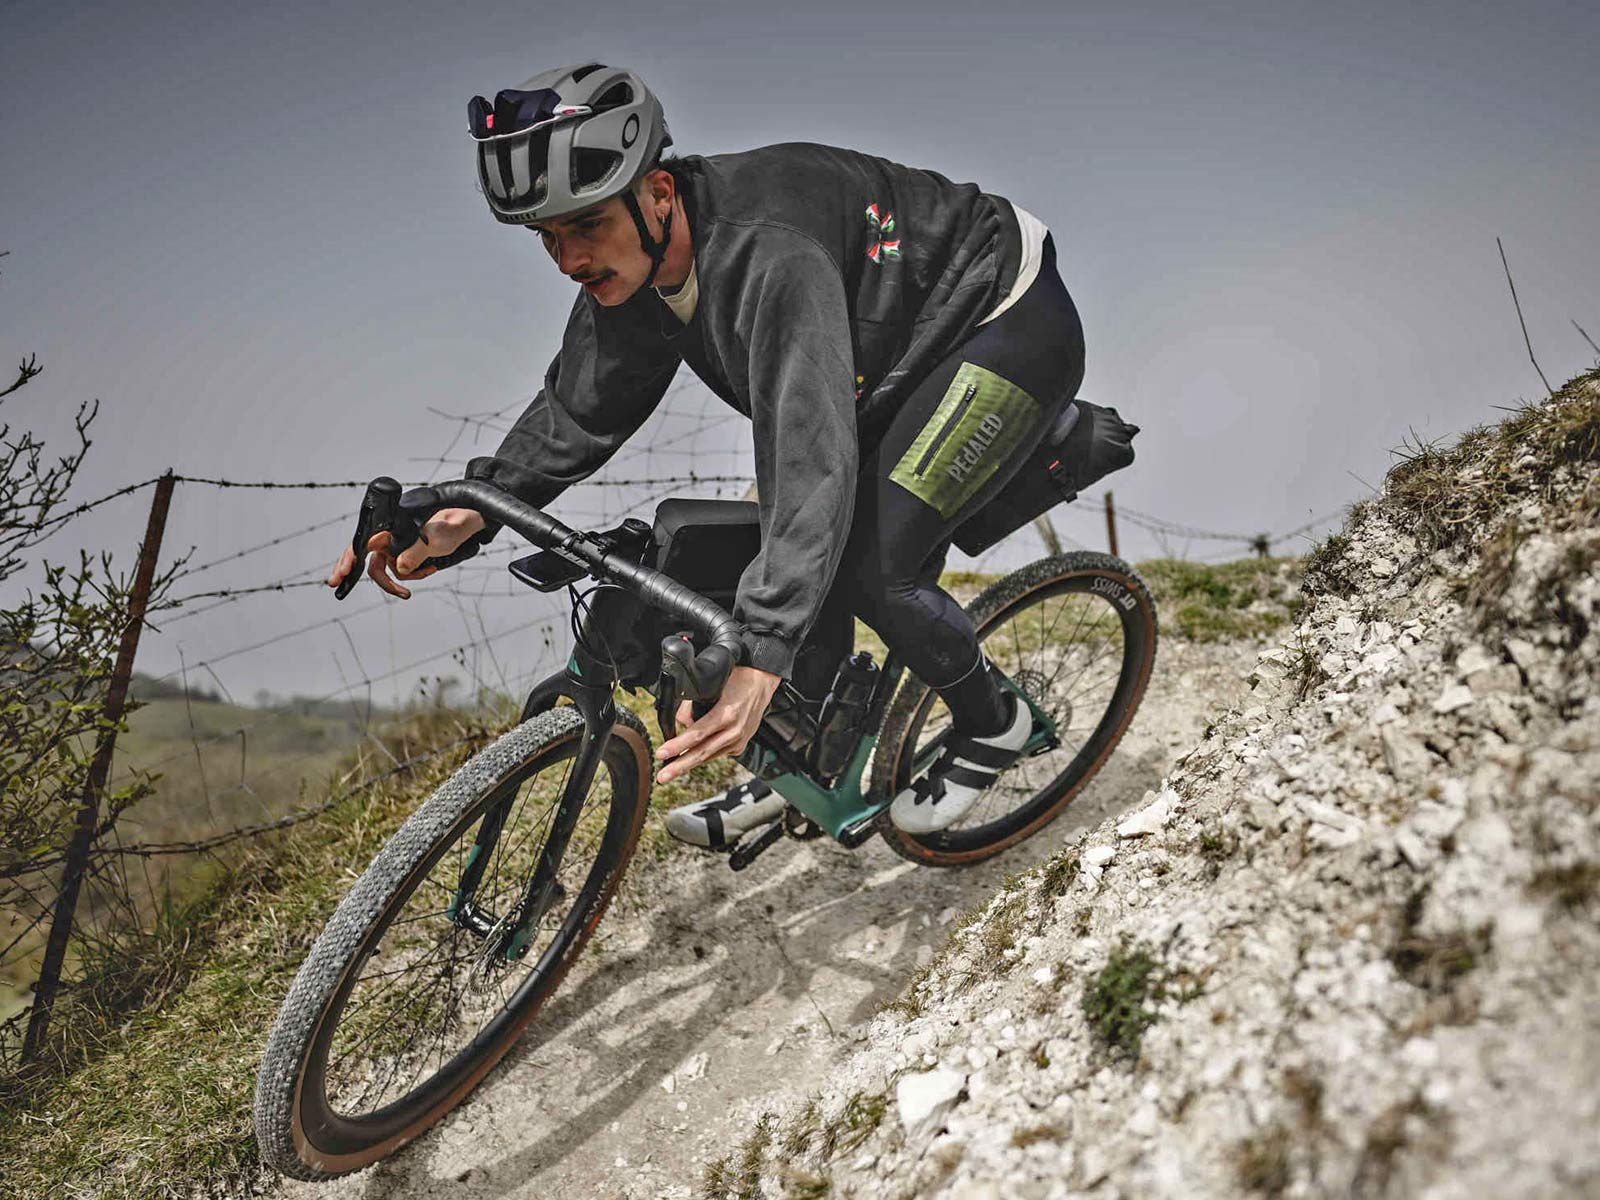 Apidura x Canyon Grizzly off-road adventure bikepacking bags for Grizl gravel bike,off-road MTB